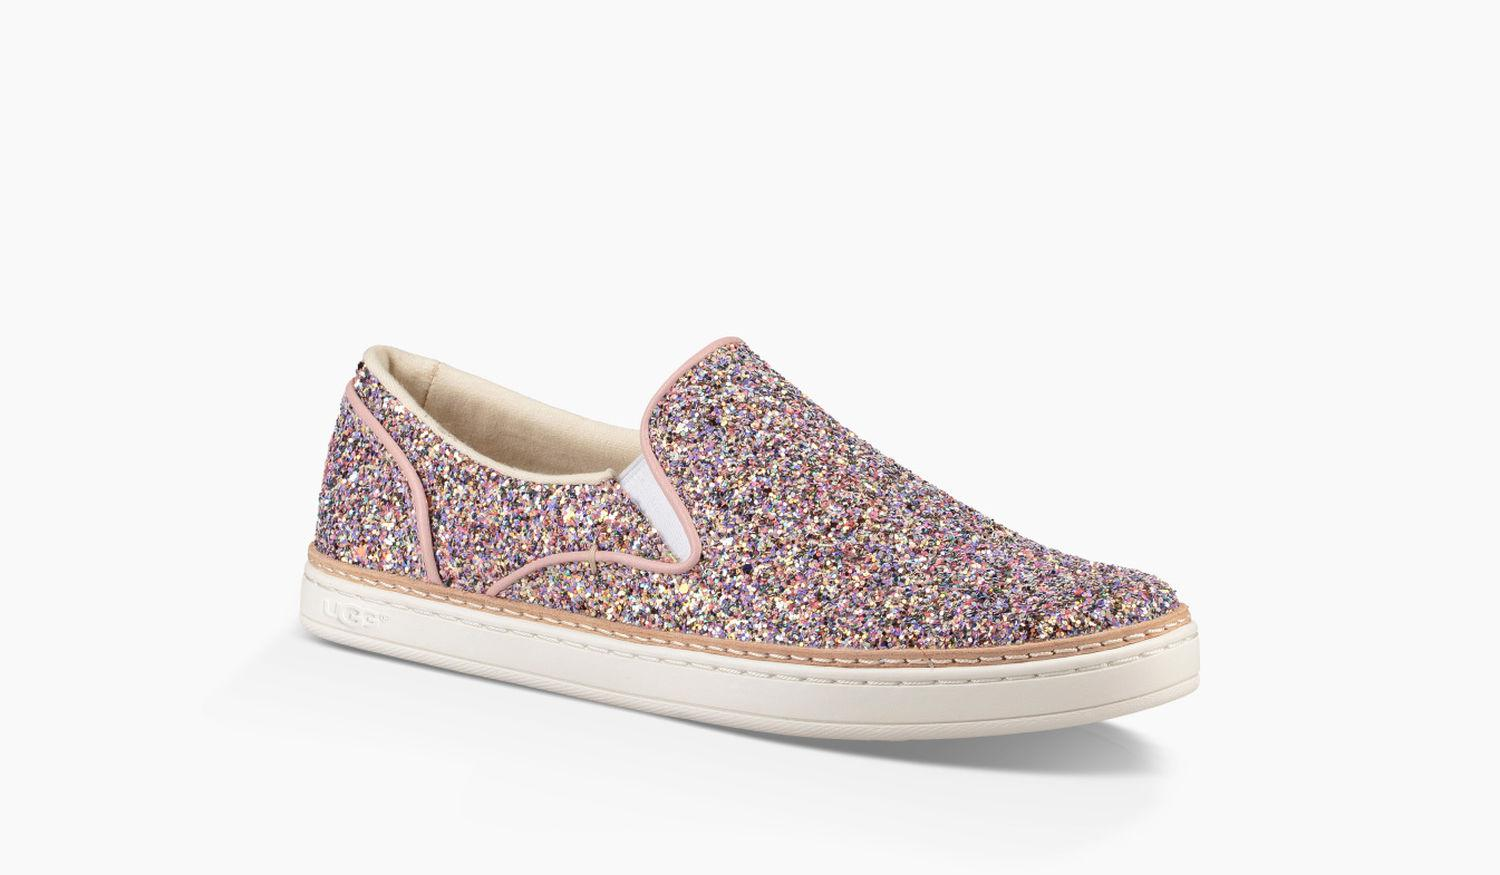 4884c3d22d3 Ugg Multicolor Women's Adley Chunky Glitter